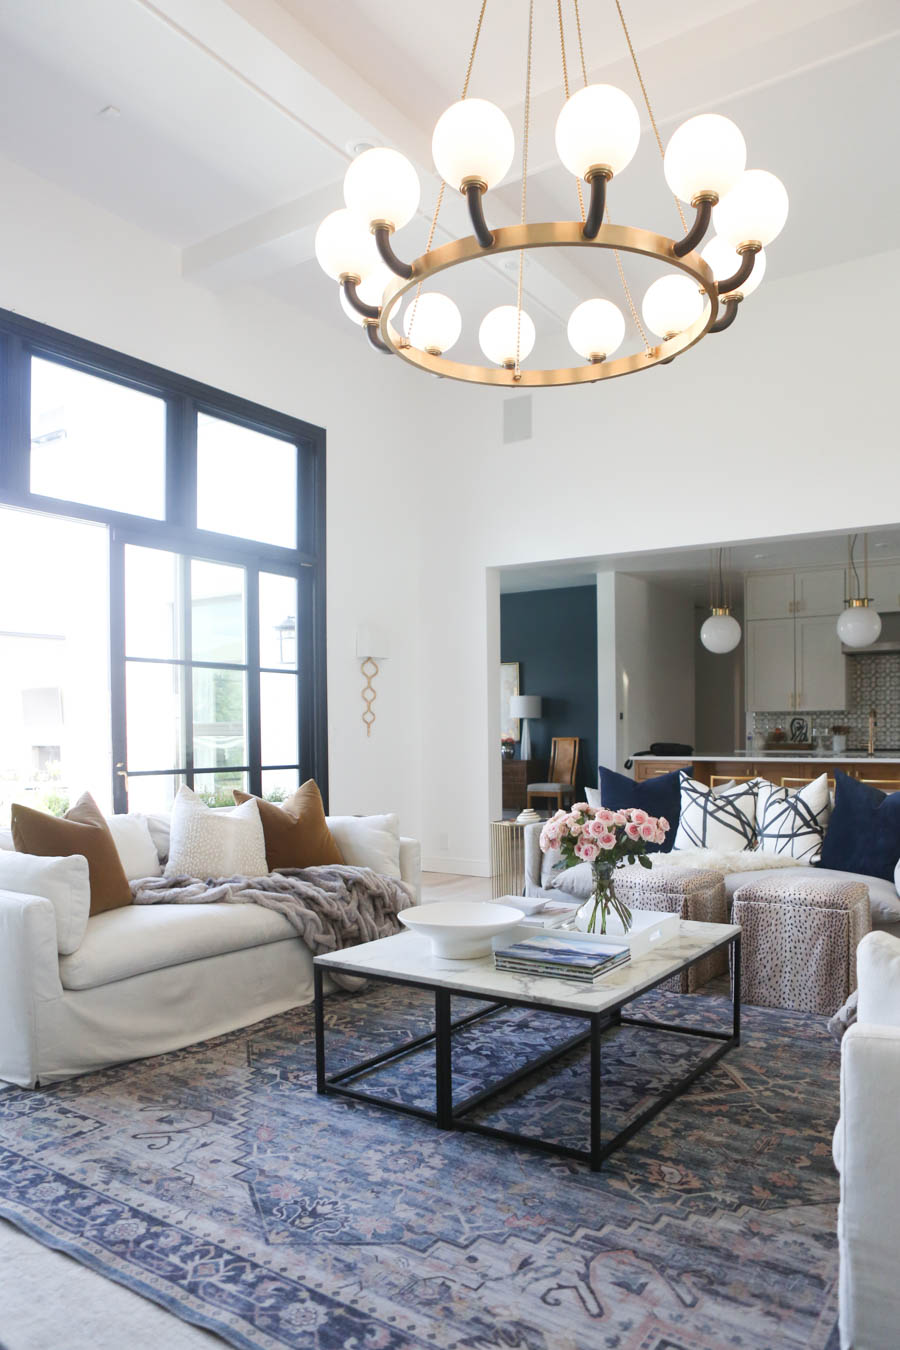 CC and MIke Living Remodel Reveal large natural wood island with quartz countertops and gold bar stools living room with navy rug slipcover crypton fabric navy Hathaway navy velvet pillows leopard ottomans marble coffee tables navy and pink large area rug